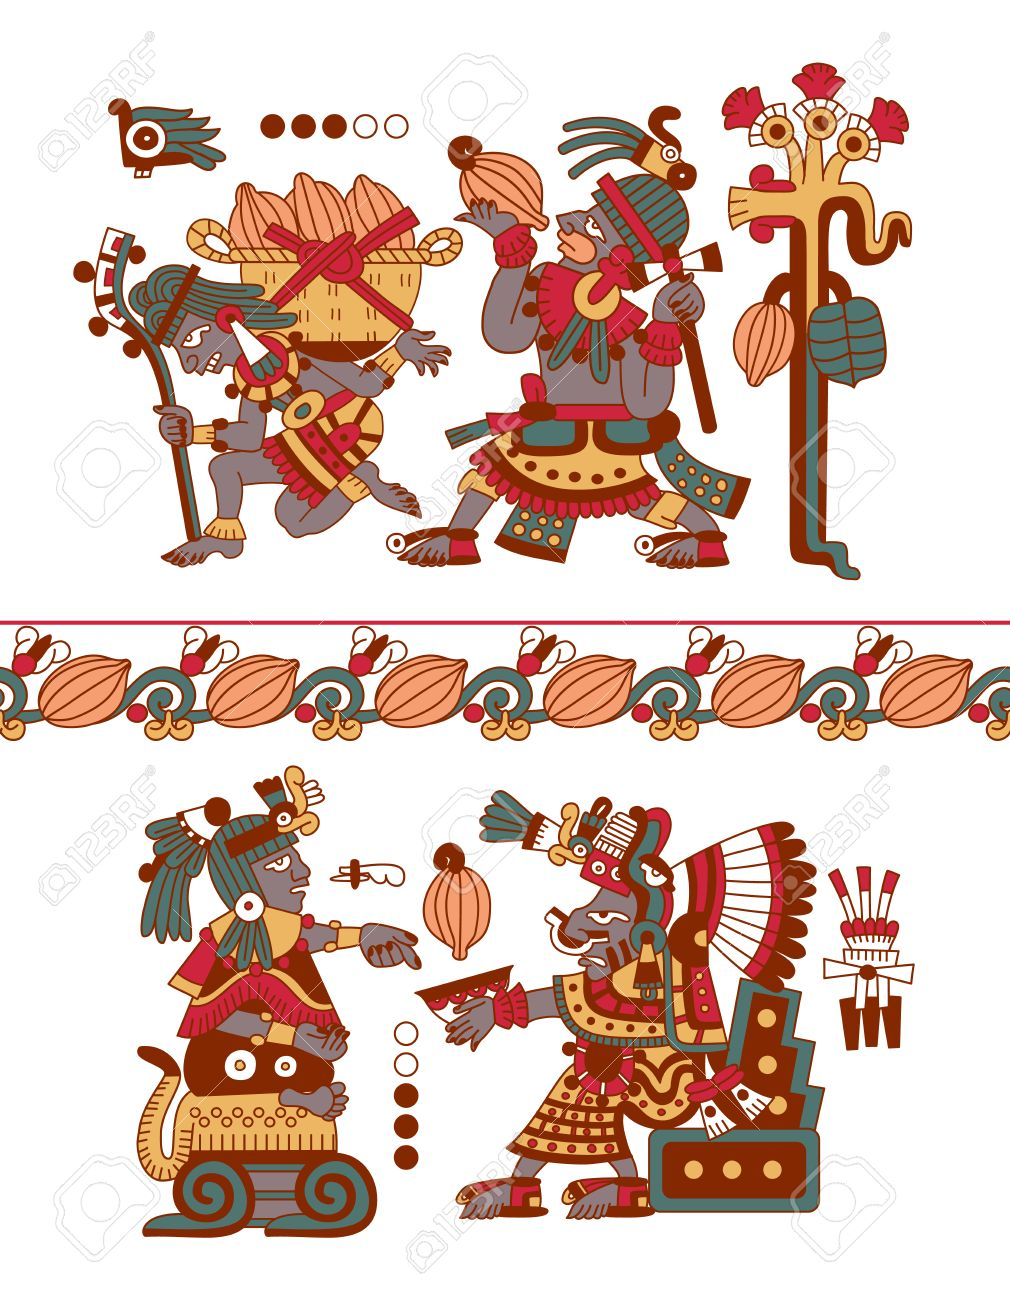 Vector Illustration Sketch Drawing Aztec Pattern Cacao Tree Royalty Free Cliparts Vectors And Stock Illustration Image 62776230